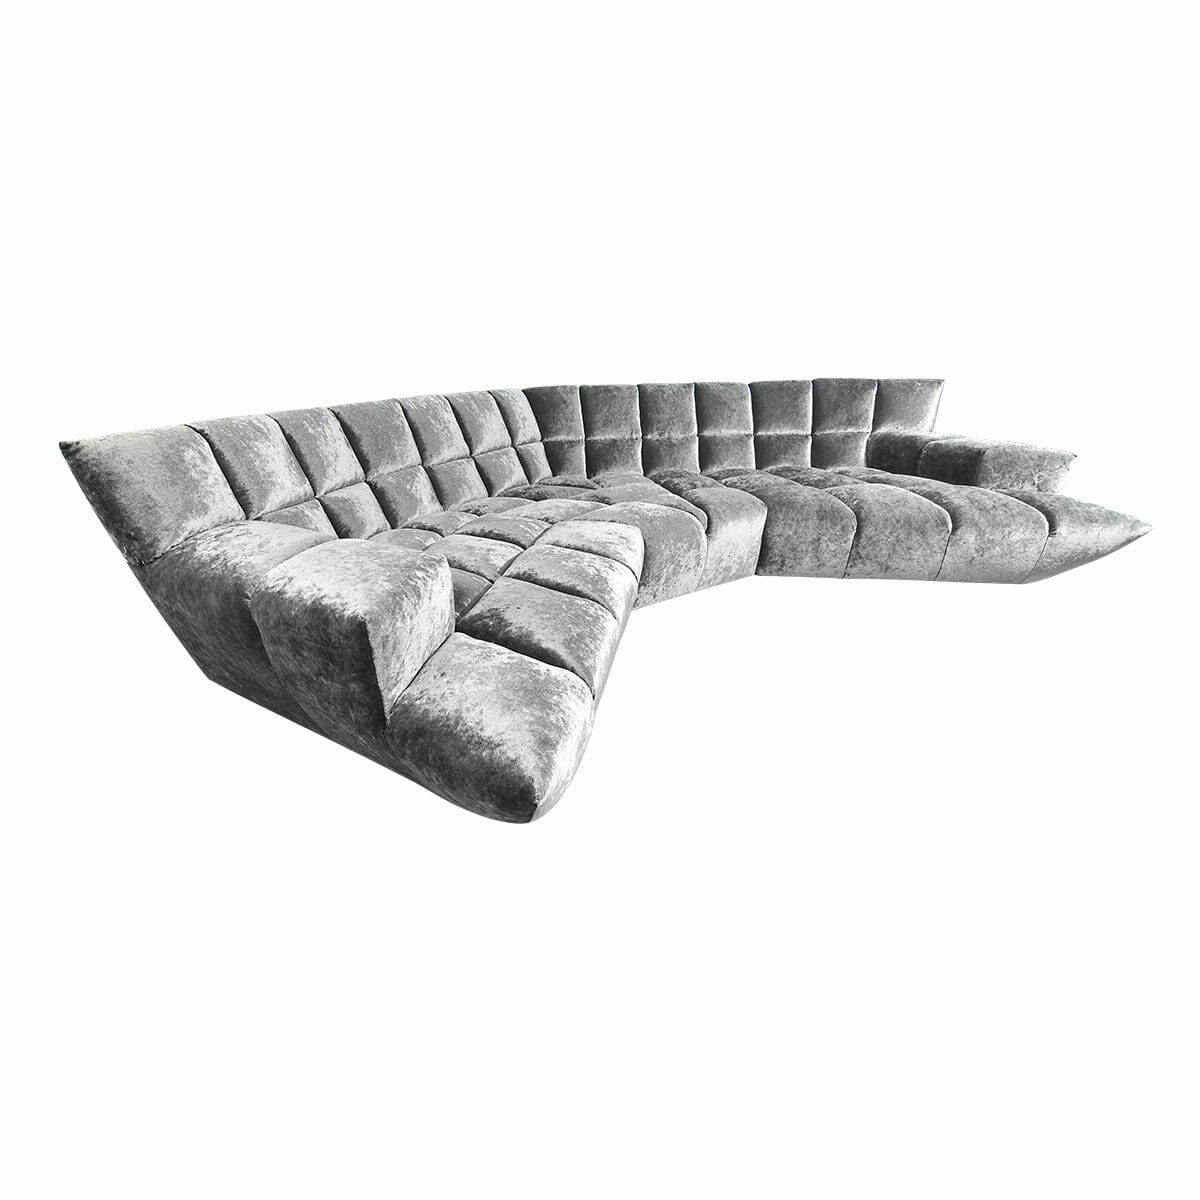 Bretz Cloud Cloud 7 By Bretz Top Angebot An Bretz Cloud 7 Sofas Ab 4